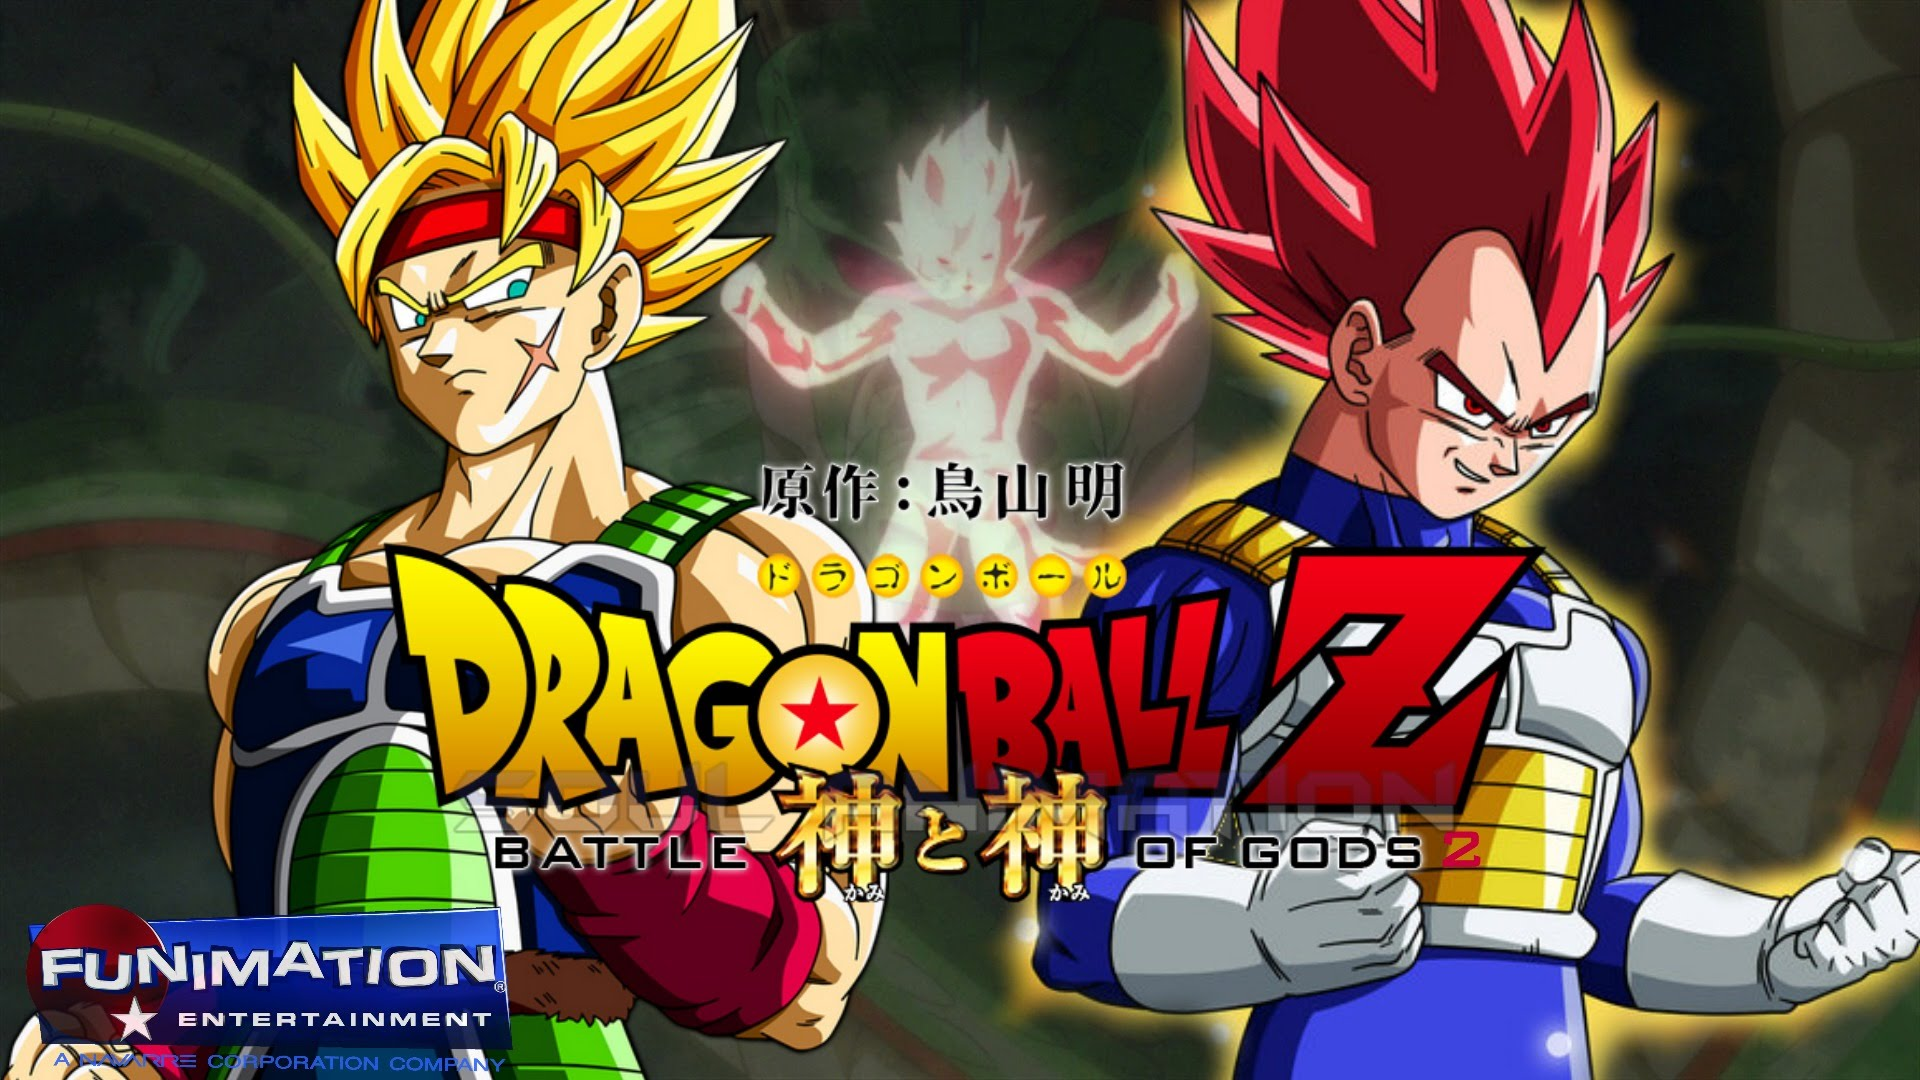 Dragon Ball Movie Wallpaper: Dragon Ball Z Wallpapers, Pictures, Images